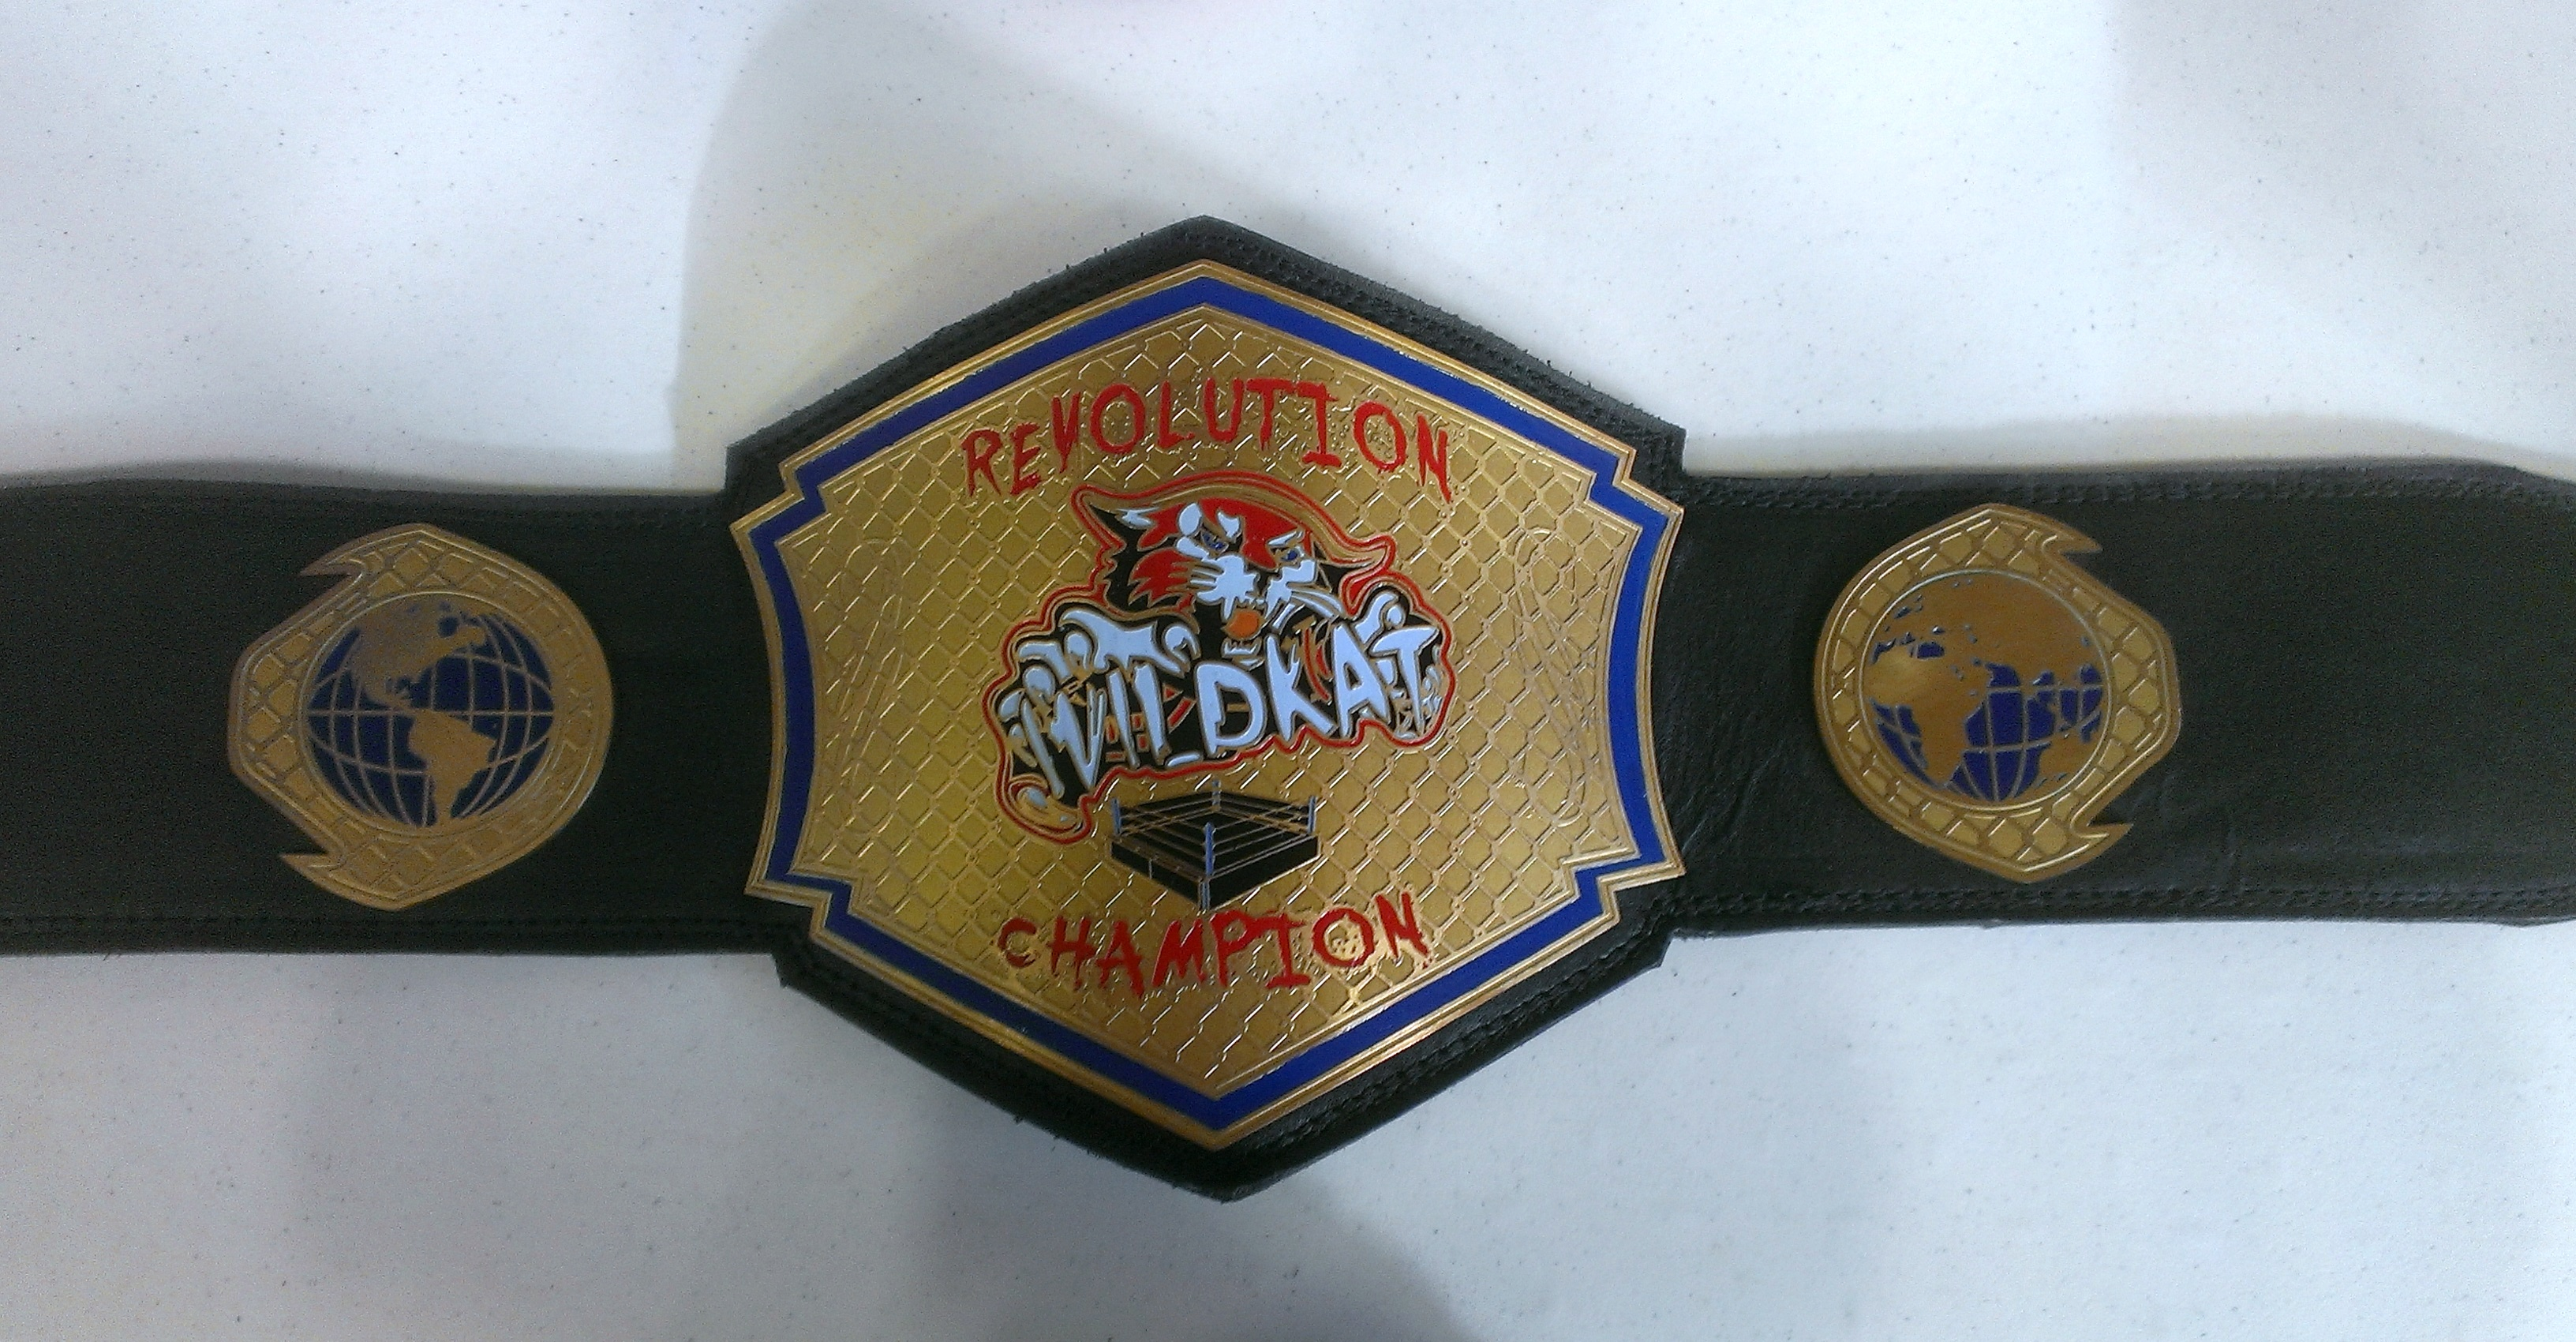 The following review was written by long-time WrestleChat.net contributor, Jeremy Plauche. You can follow Jeremy on Twitter@plauchejand on Facebookhere. Last night I spent another action packed night with Wildkat Sports […]